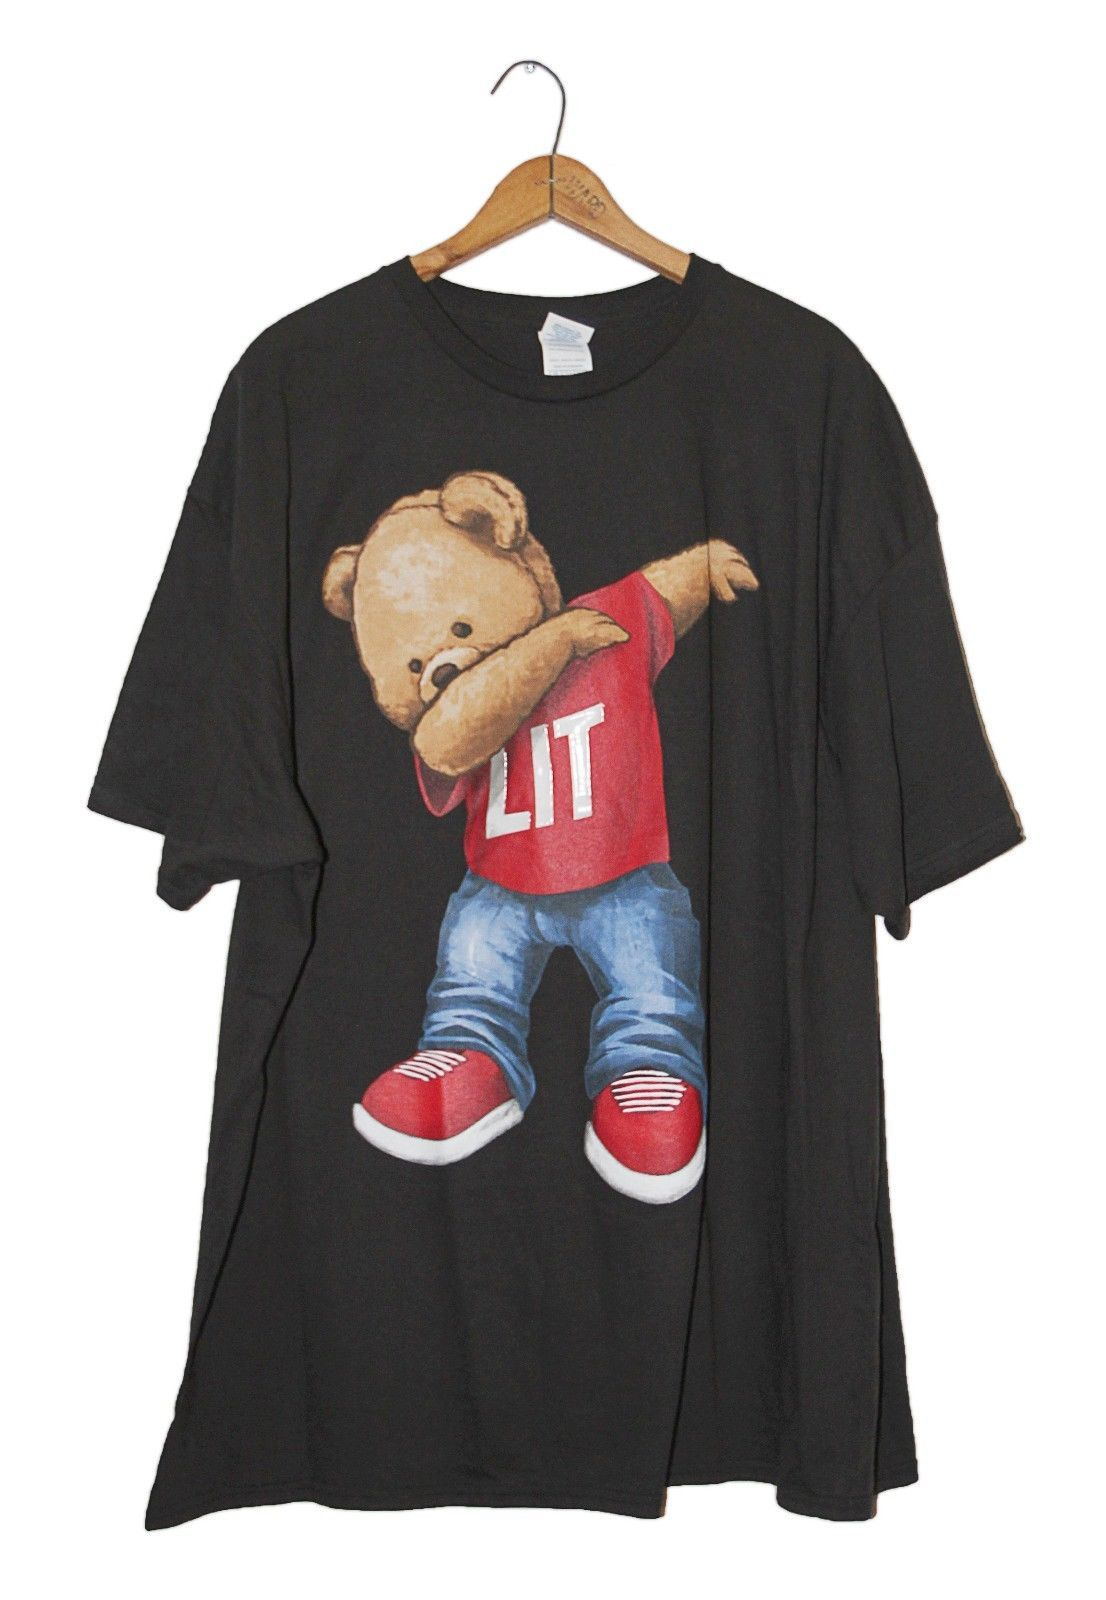 cf370bc42 Lit Dab Bear Men's Tshirt Rap Tee Urban Hiphop Street Sneaker Gel Black 2XL  | eBay